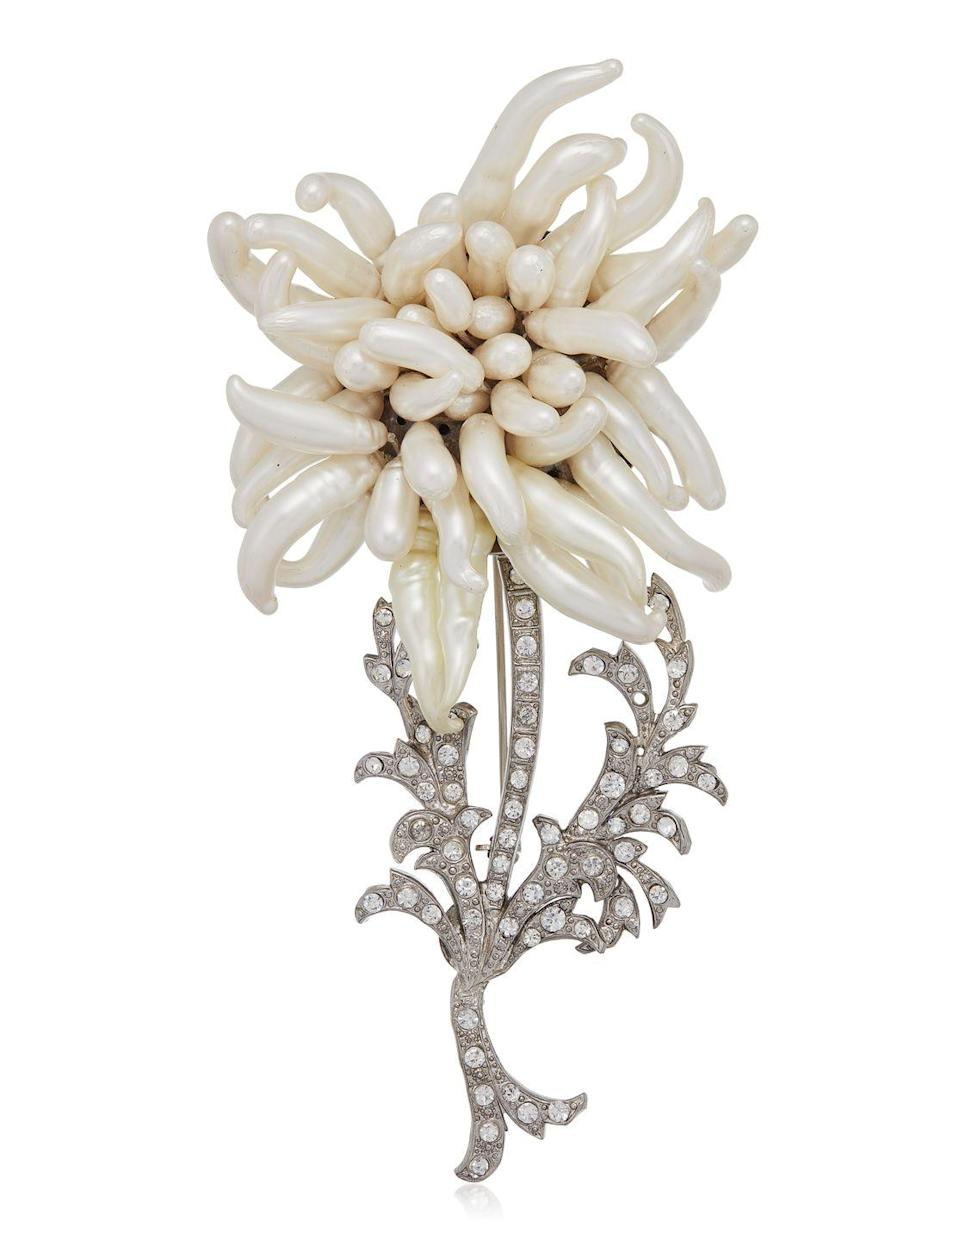 <p>This lively monochrome brooch is estimated to be worth $2,000 to $3,000.</p>